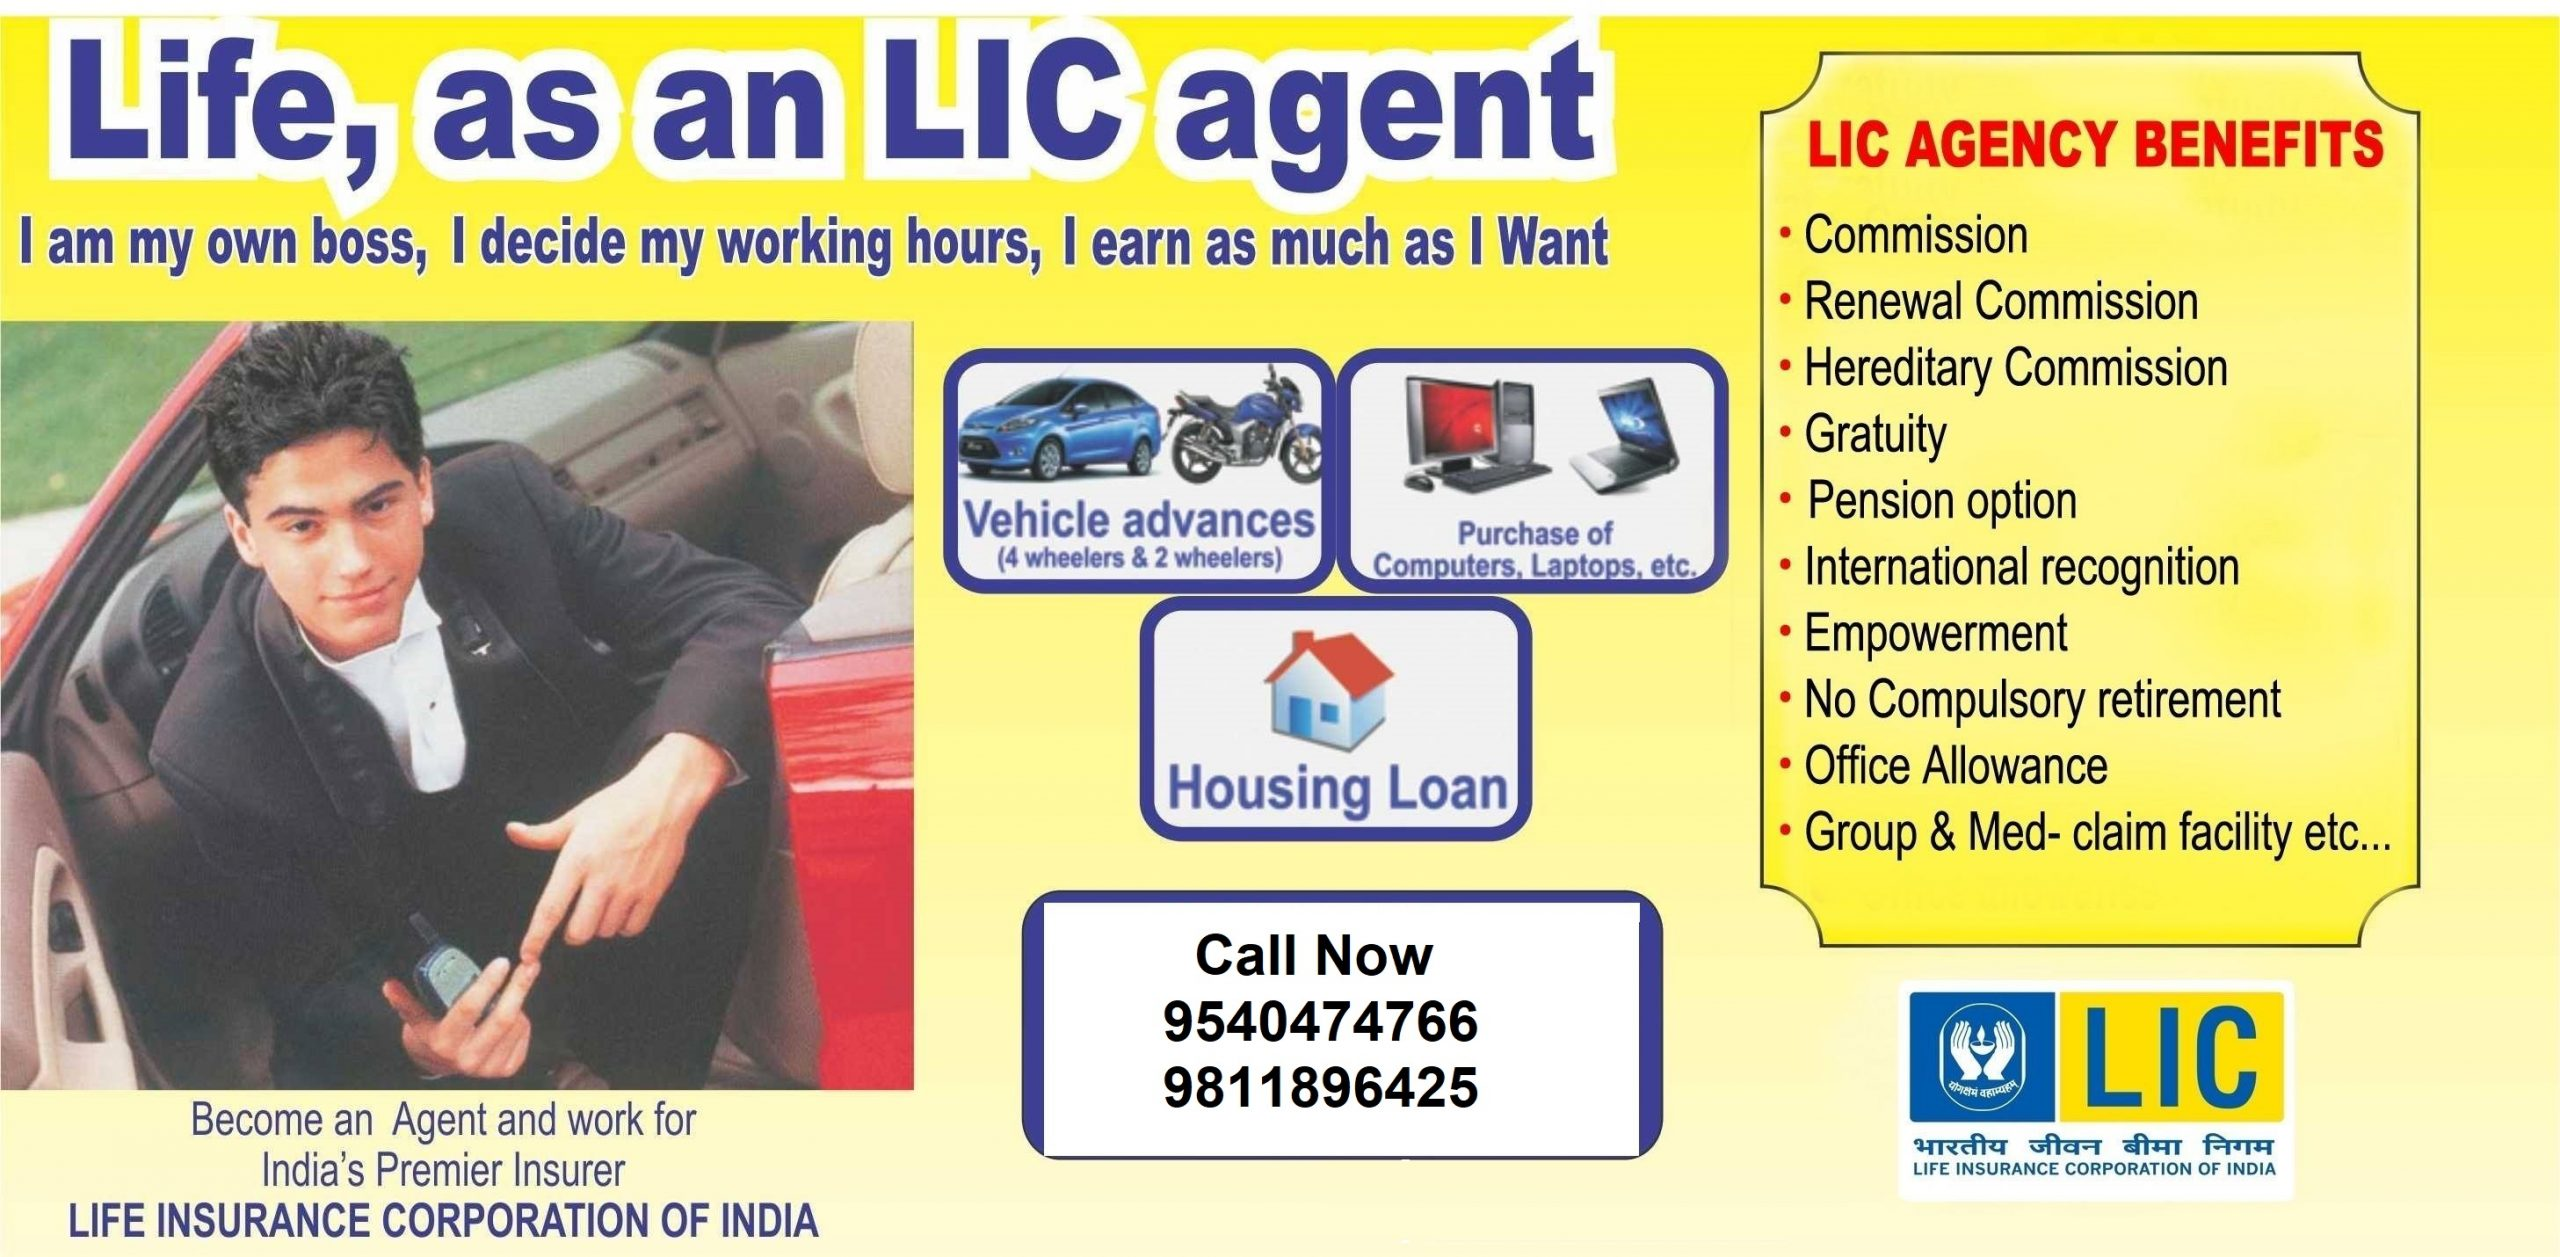 Benefits for LIC Agent